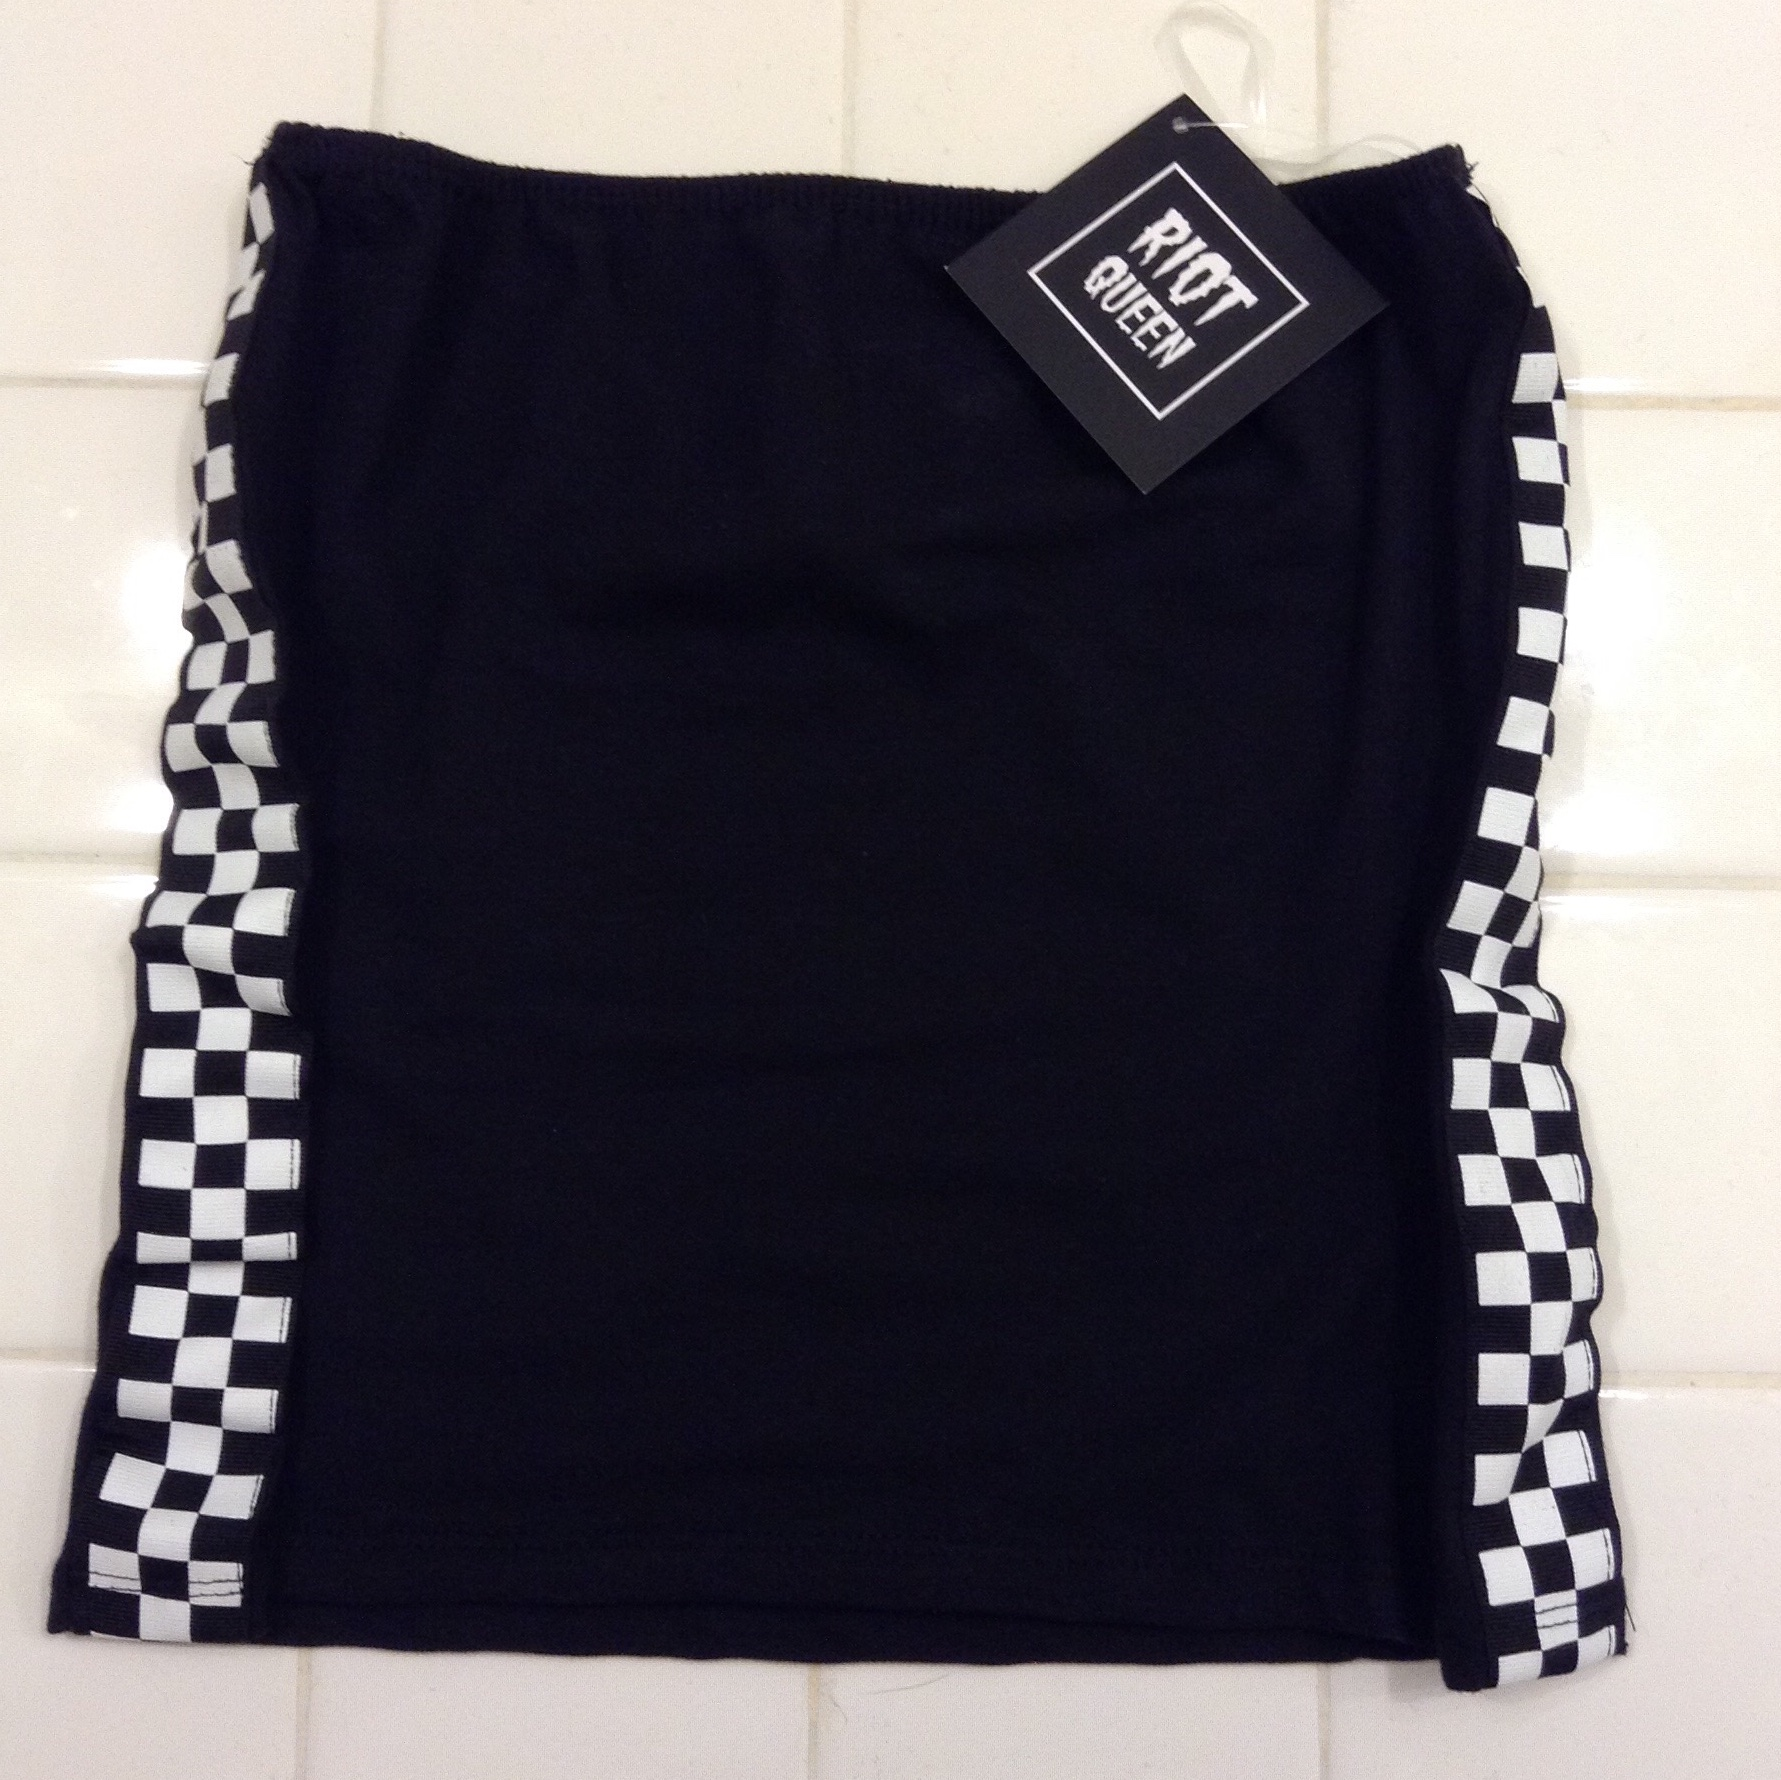 3514f7fd68 BRAND NEW black white checkered tube top  NWT. very perfect - Depop